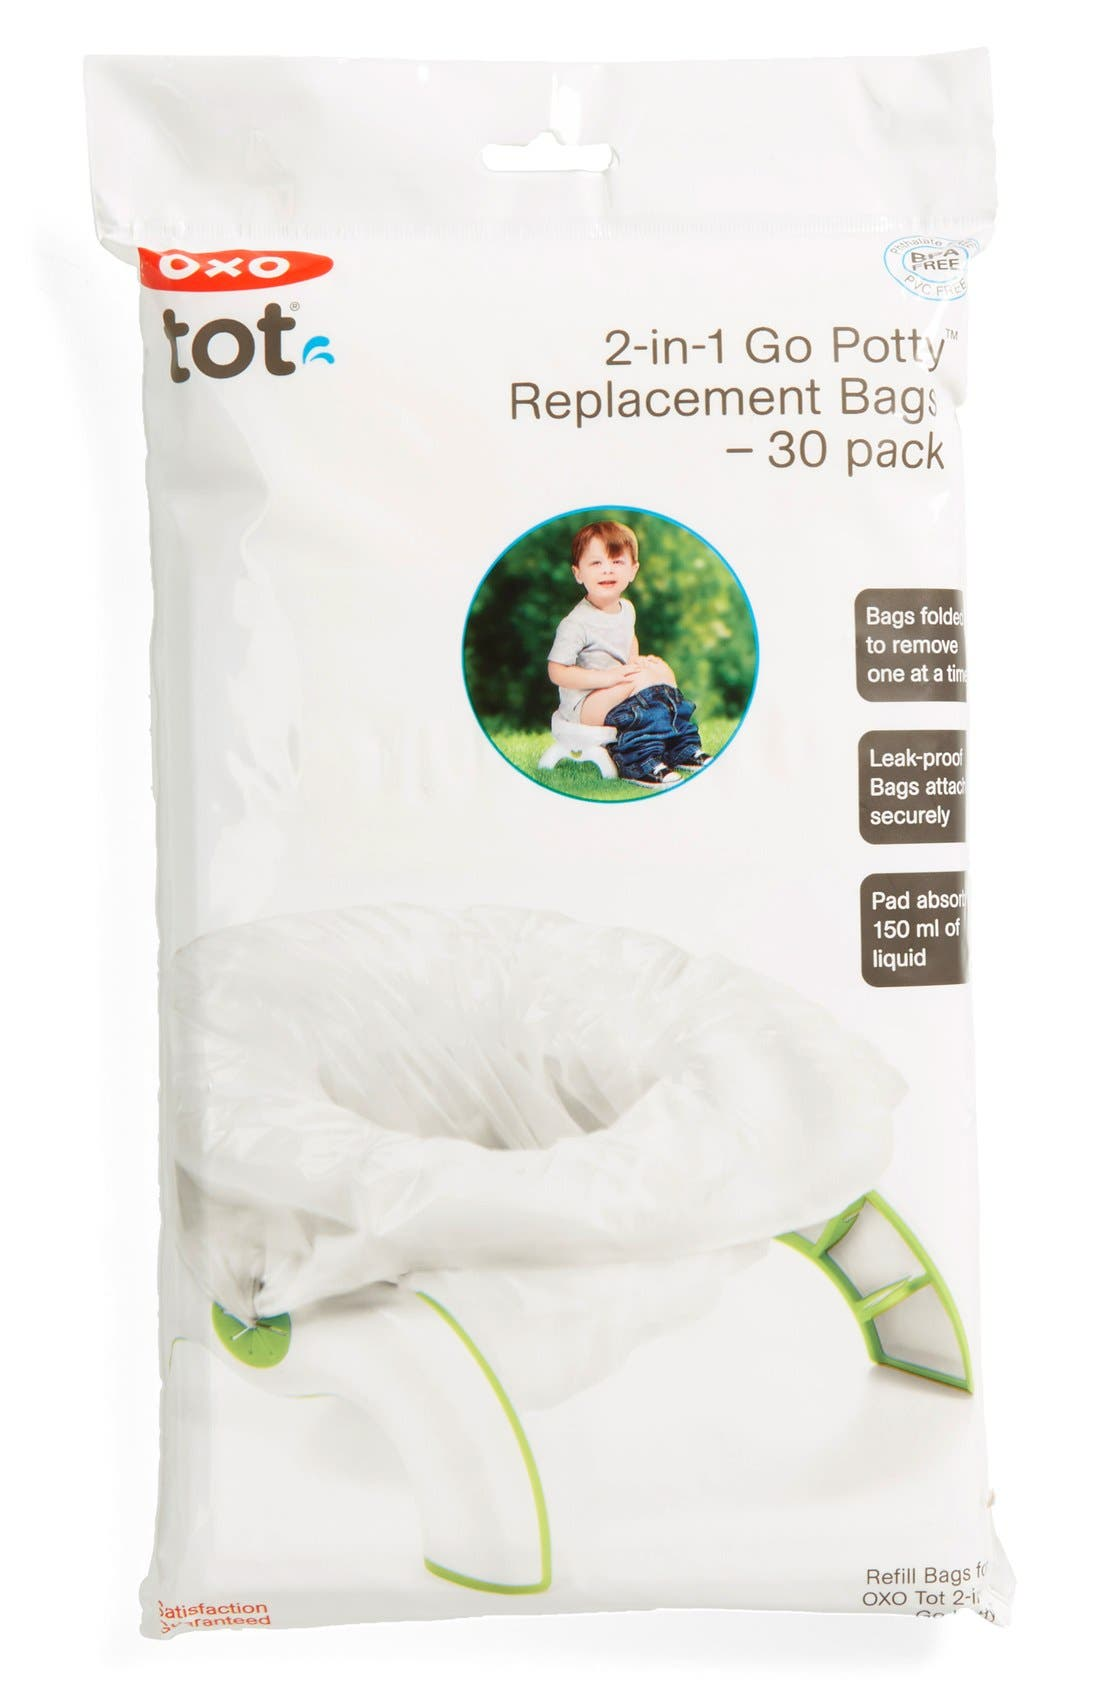 OXO Tot '2-in-1 Go Potty' Refill Bags